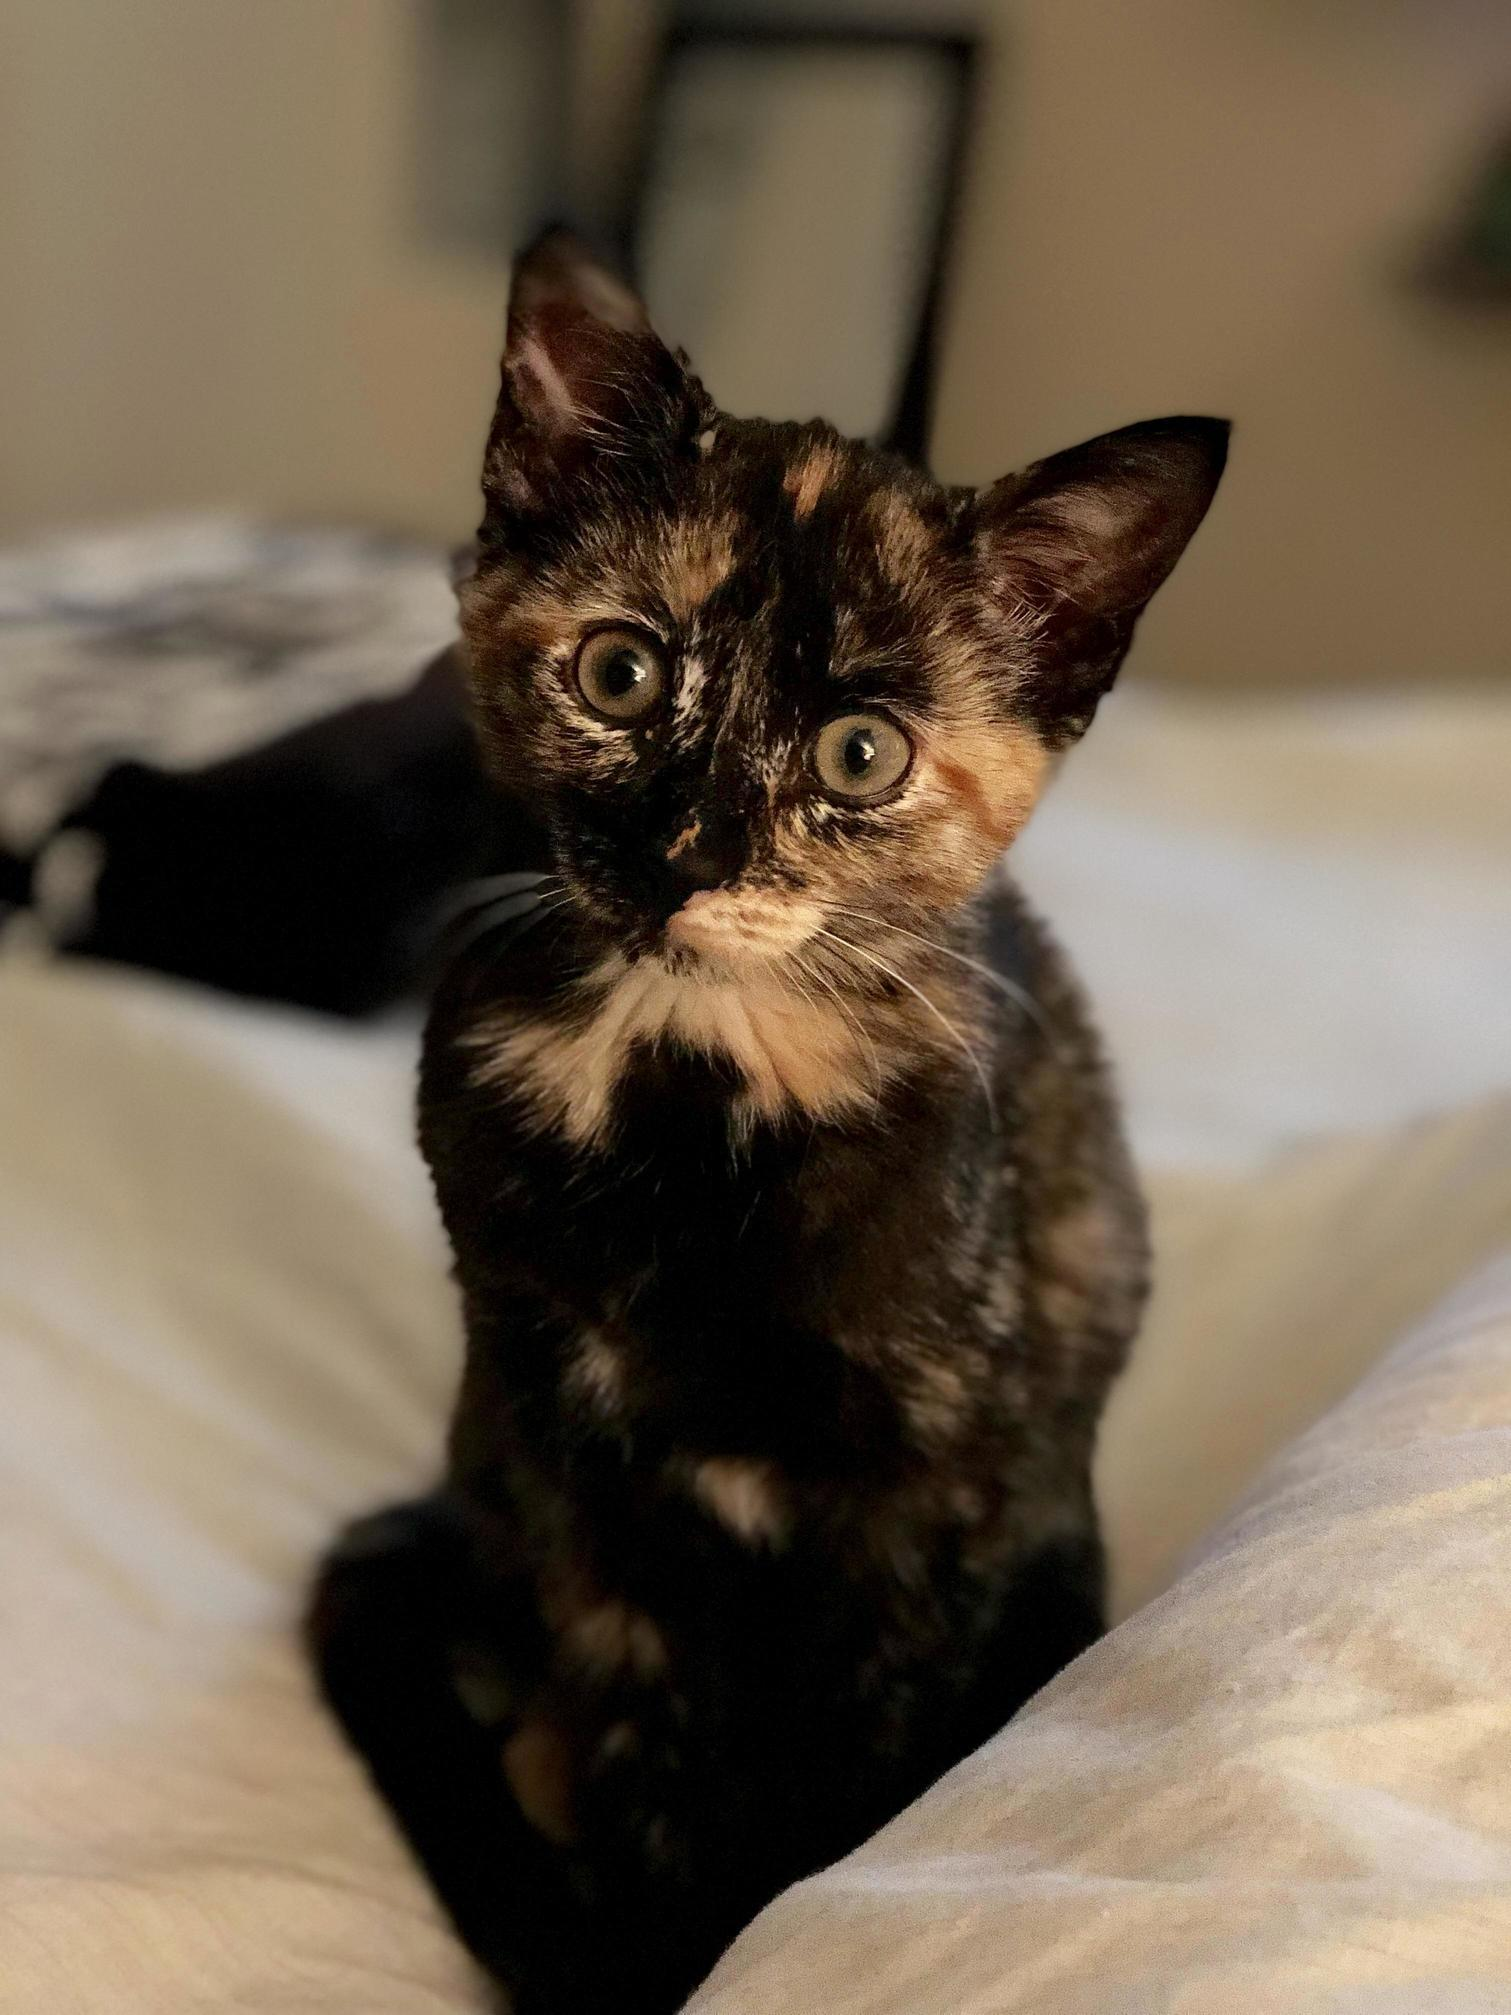 Rescued this little girl from the shelter